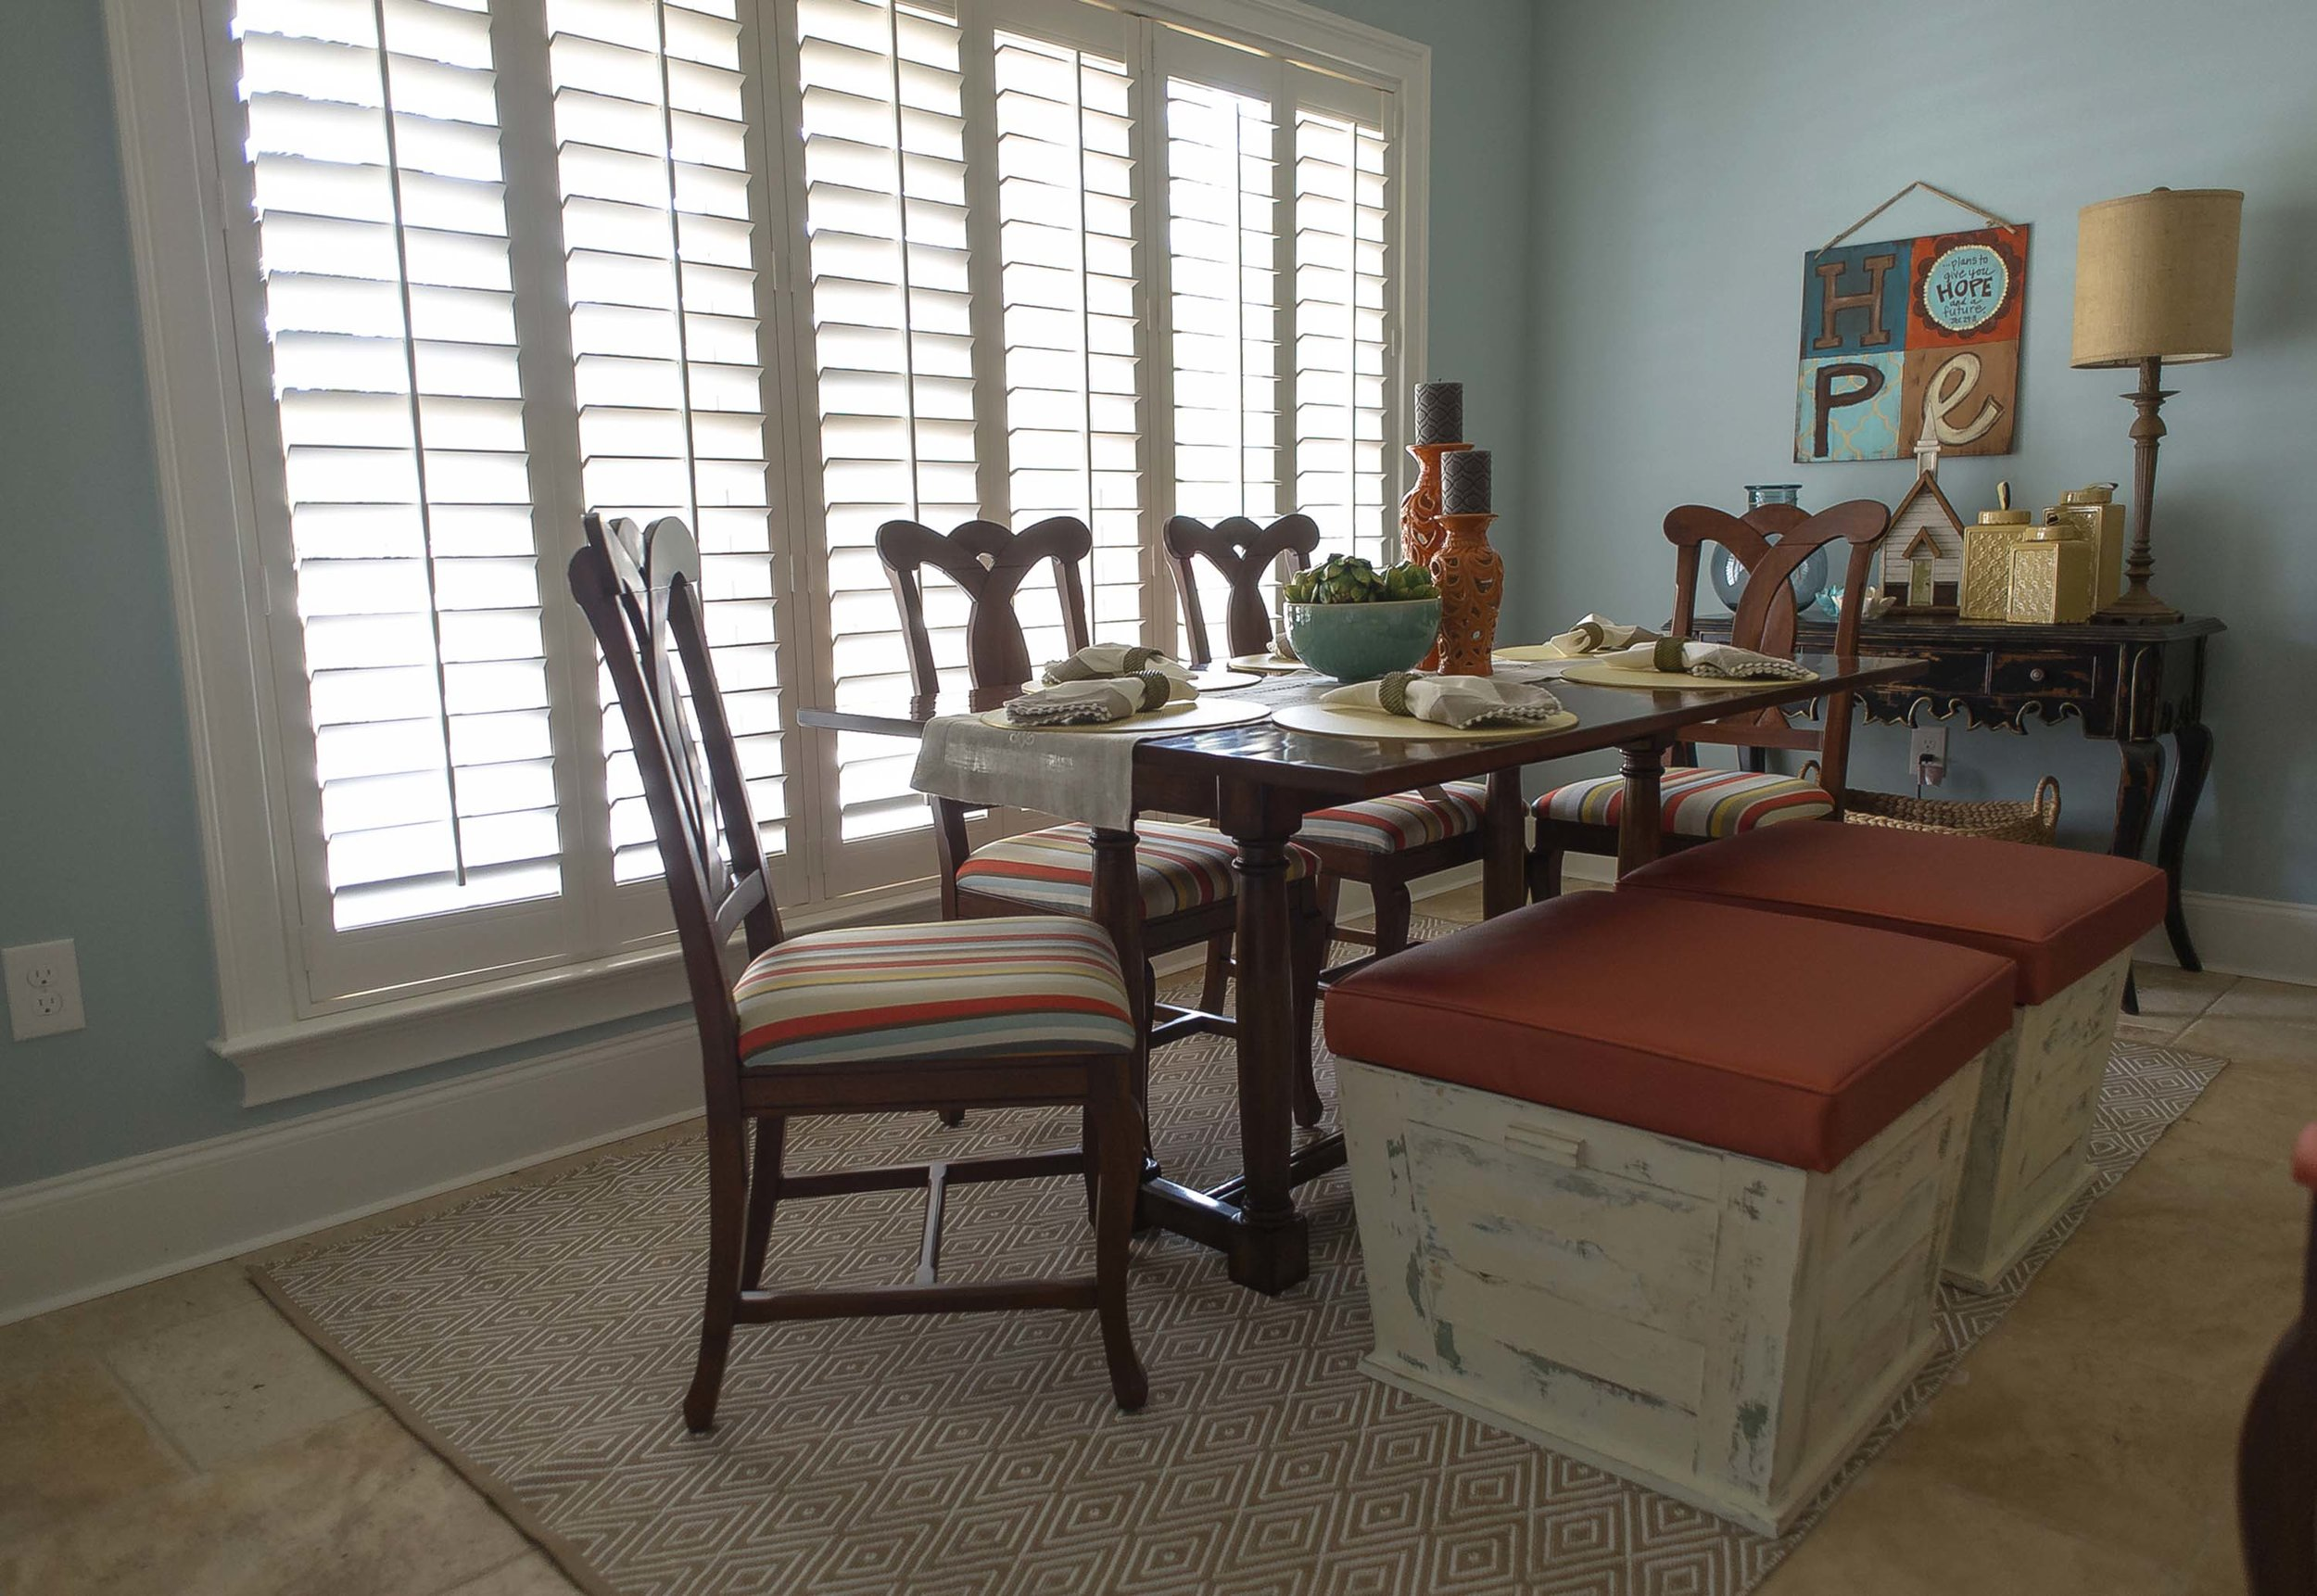 Reupholstered Chairs and Bench Seating Around Wooden Table